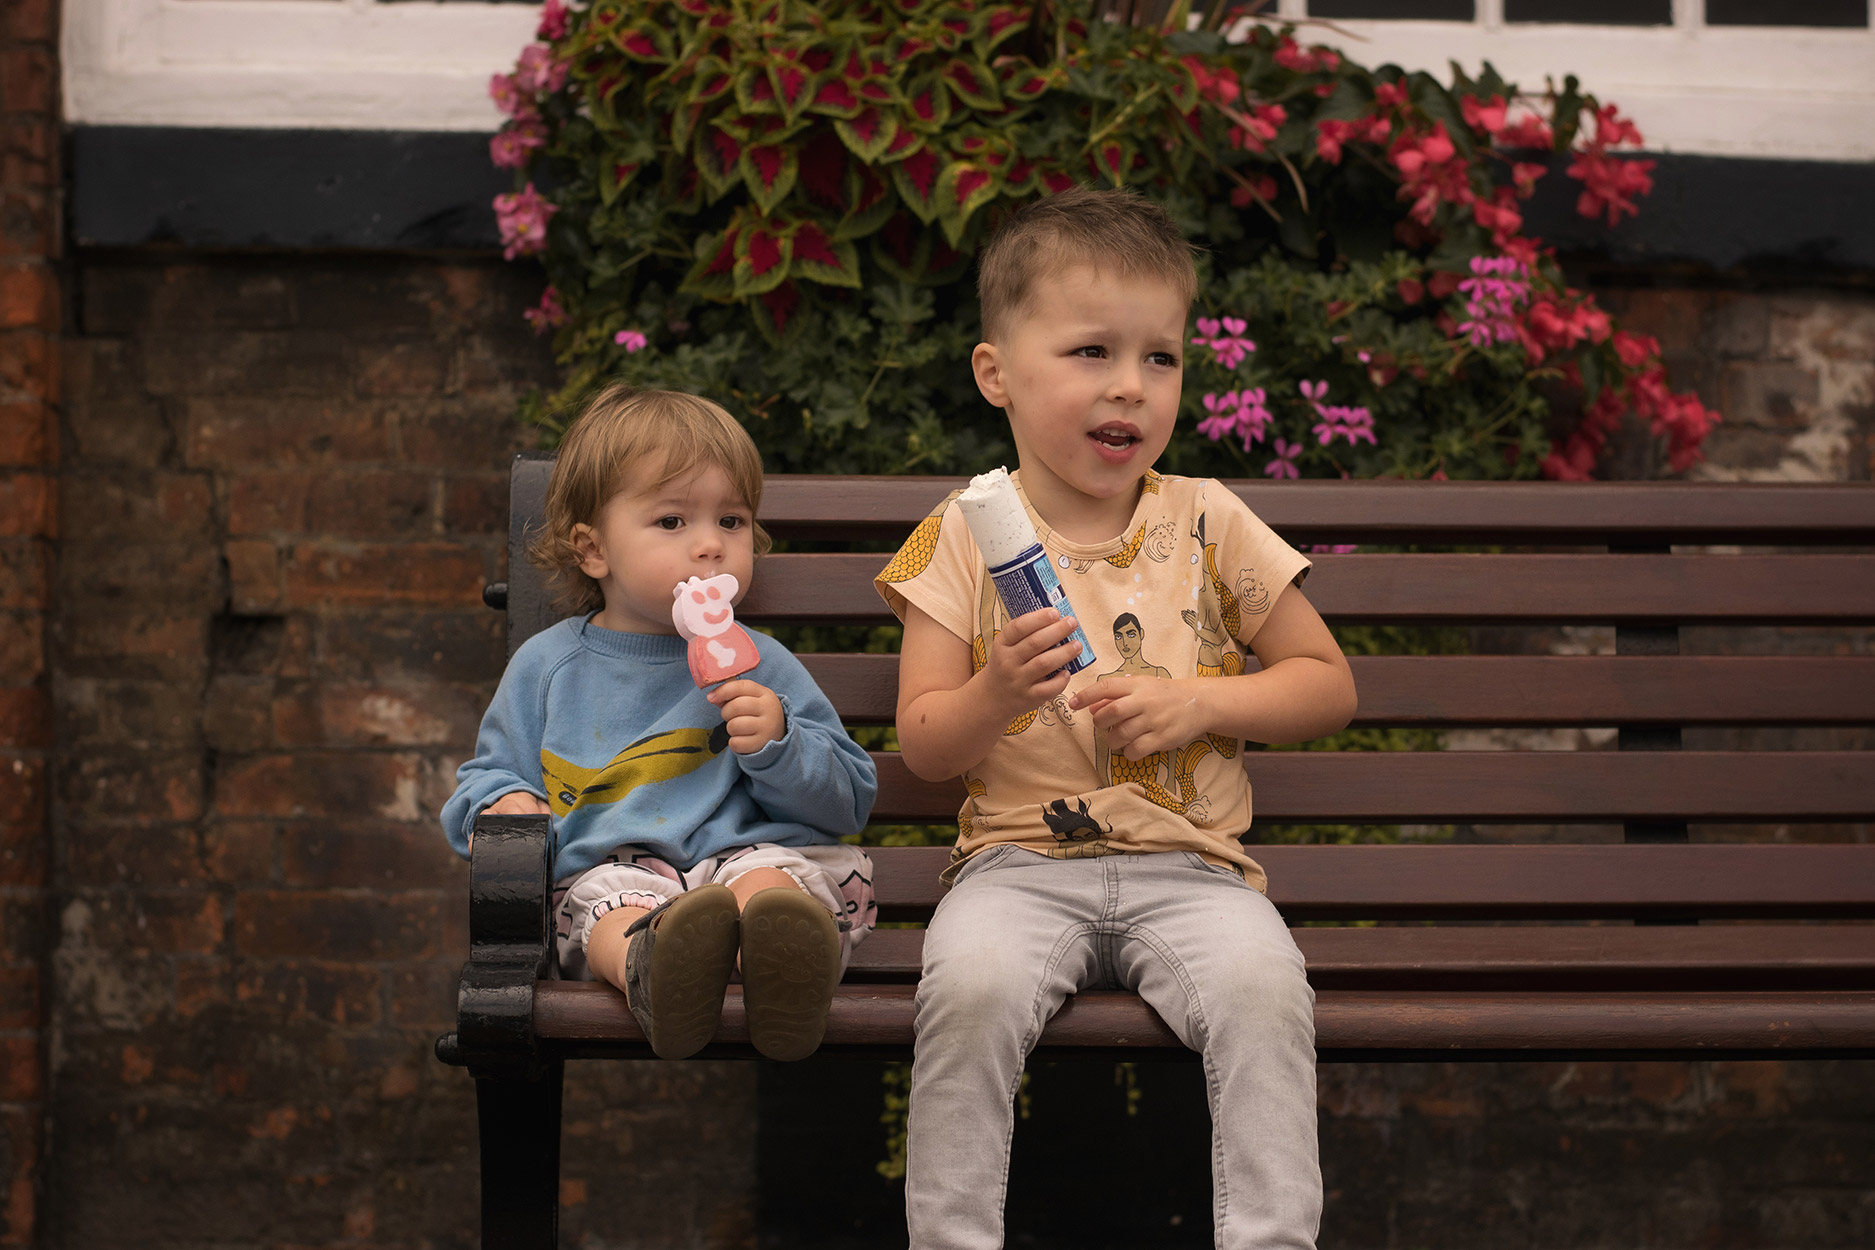 Brothers wearing Bobo Choses bananas, Mini Rodini mercies and Hugo Loves Tiki rad shorts eating Peppa Pig ice-cream sitting on bench